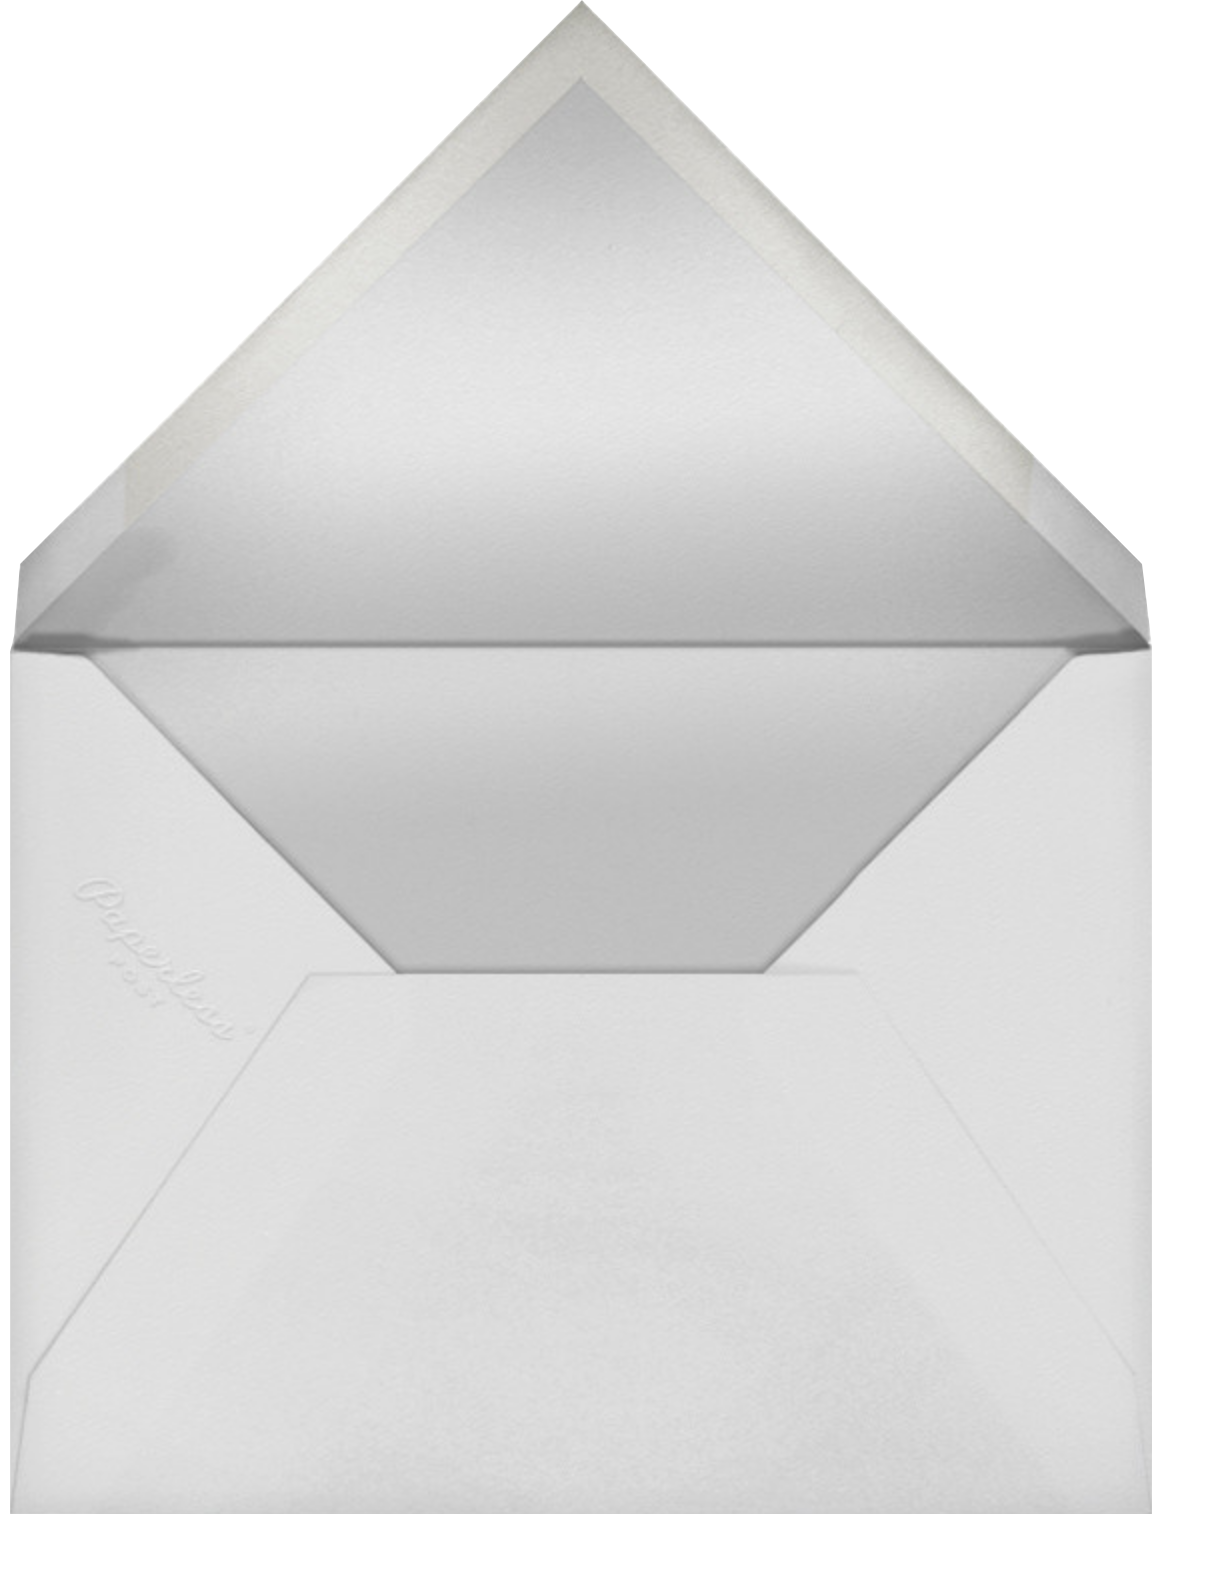 Gesso I (Save The Date) - Pewter Gray - Paperless Post - null - envelope back